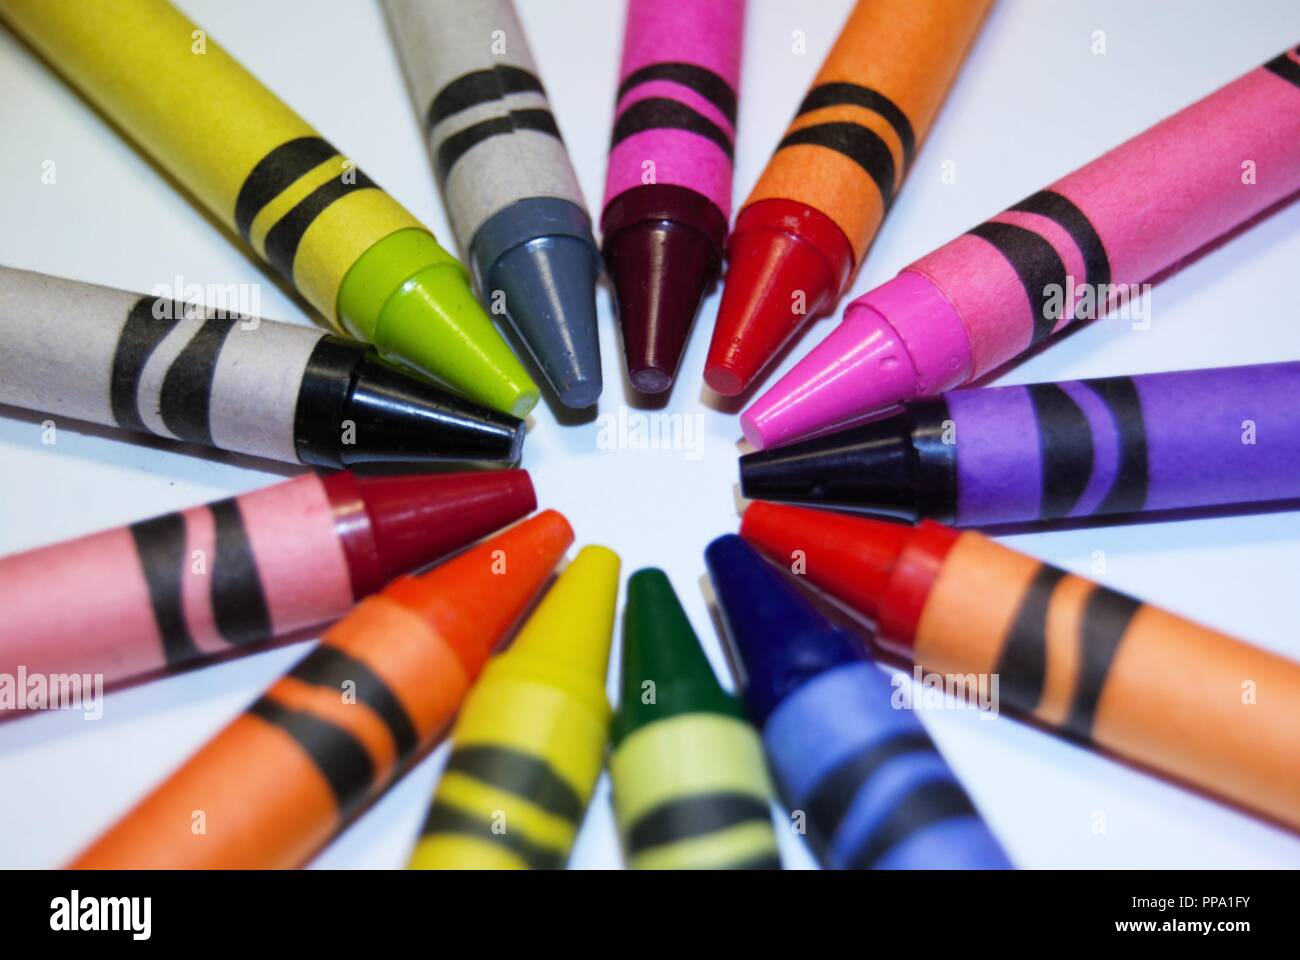 Color Palette Coloring Crayons Abstract Stock Photos & Color Palette ...